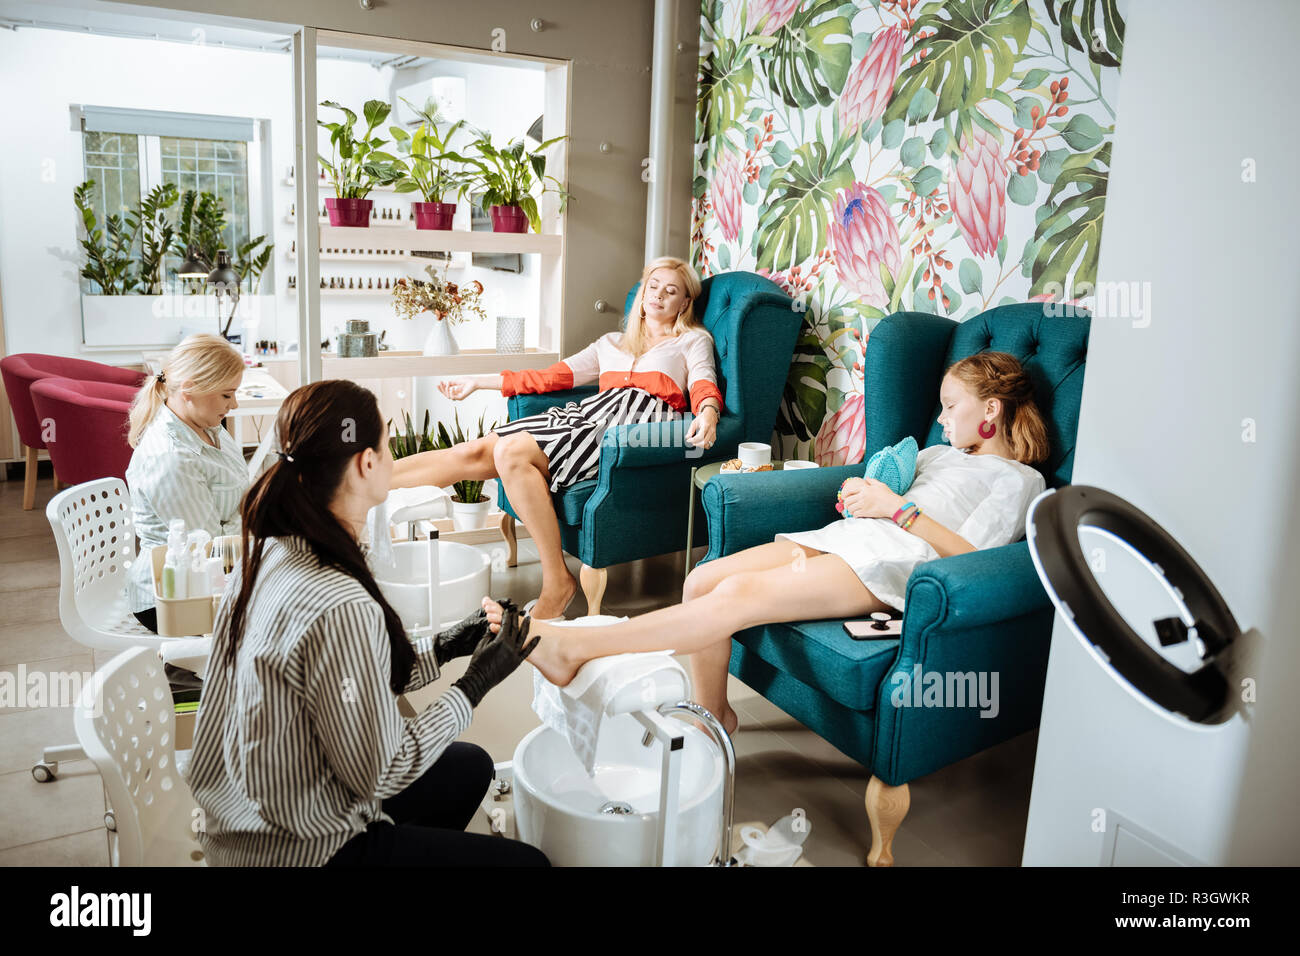 Mother and daughter sitting on comfy armchairs having pedicure - Stock Image